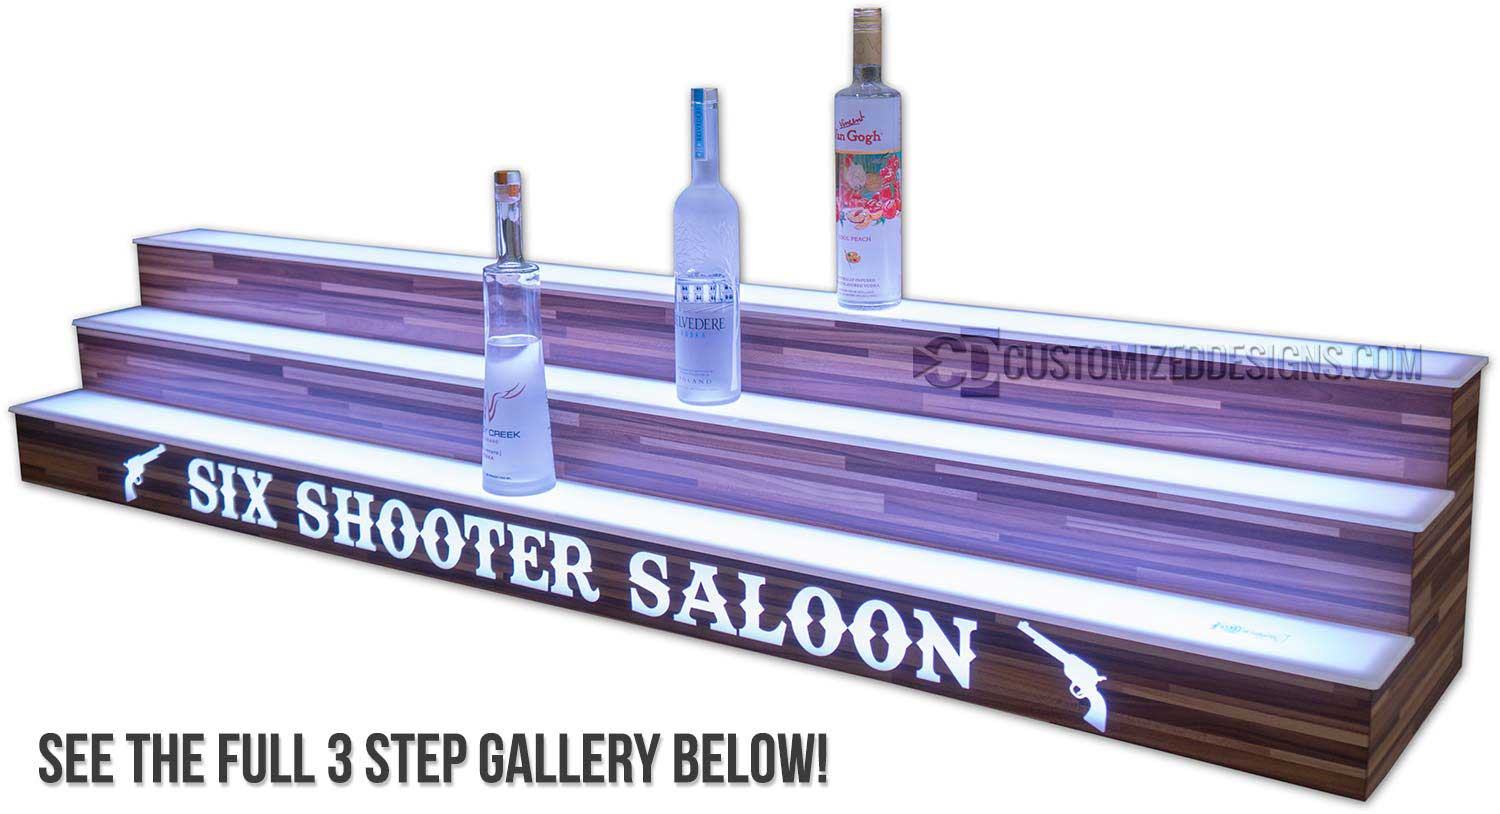 3 Tier Bar Shelves w/ Modern Edge Finish - See more pictures at the bottom of this page!